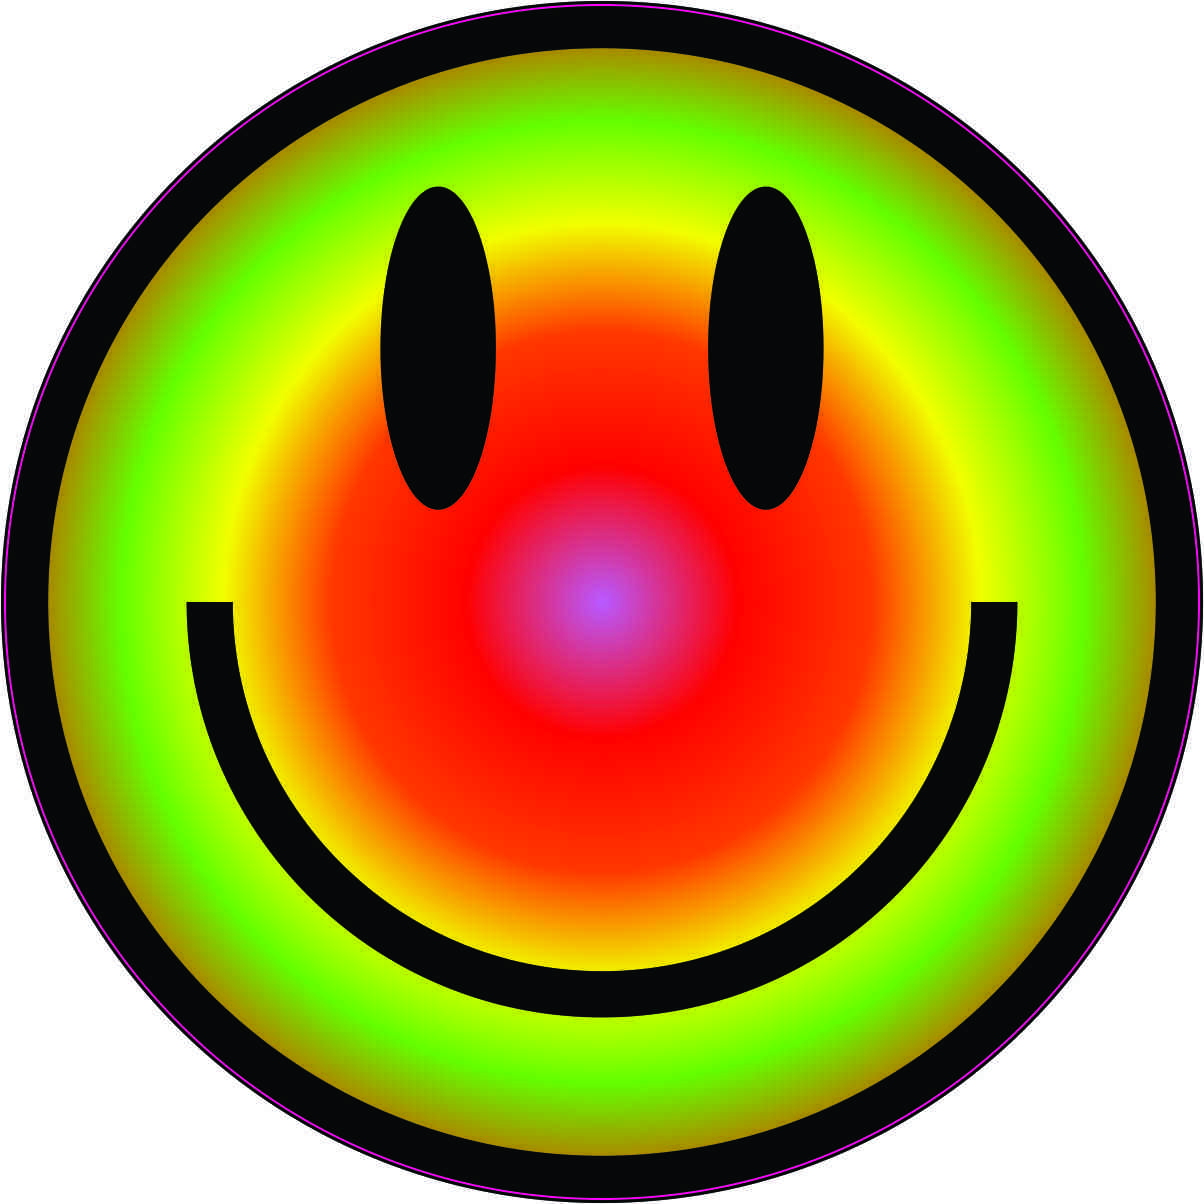 Colorful Smiley Face Sticker